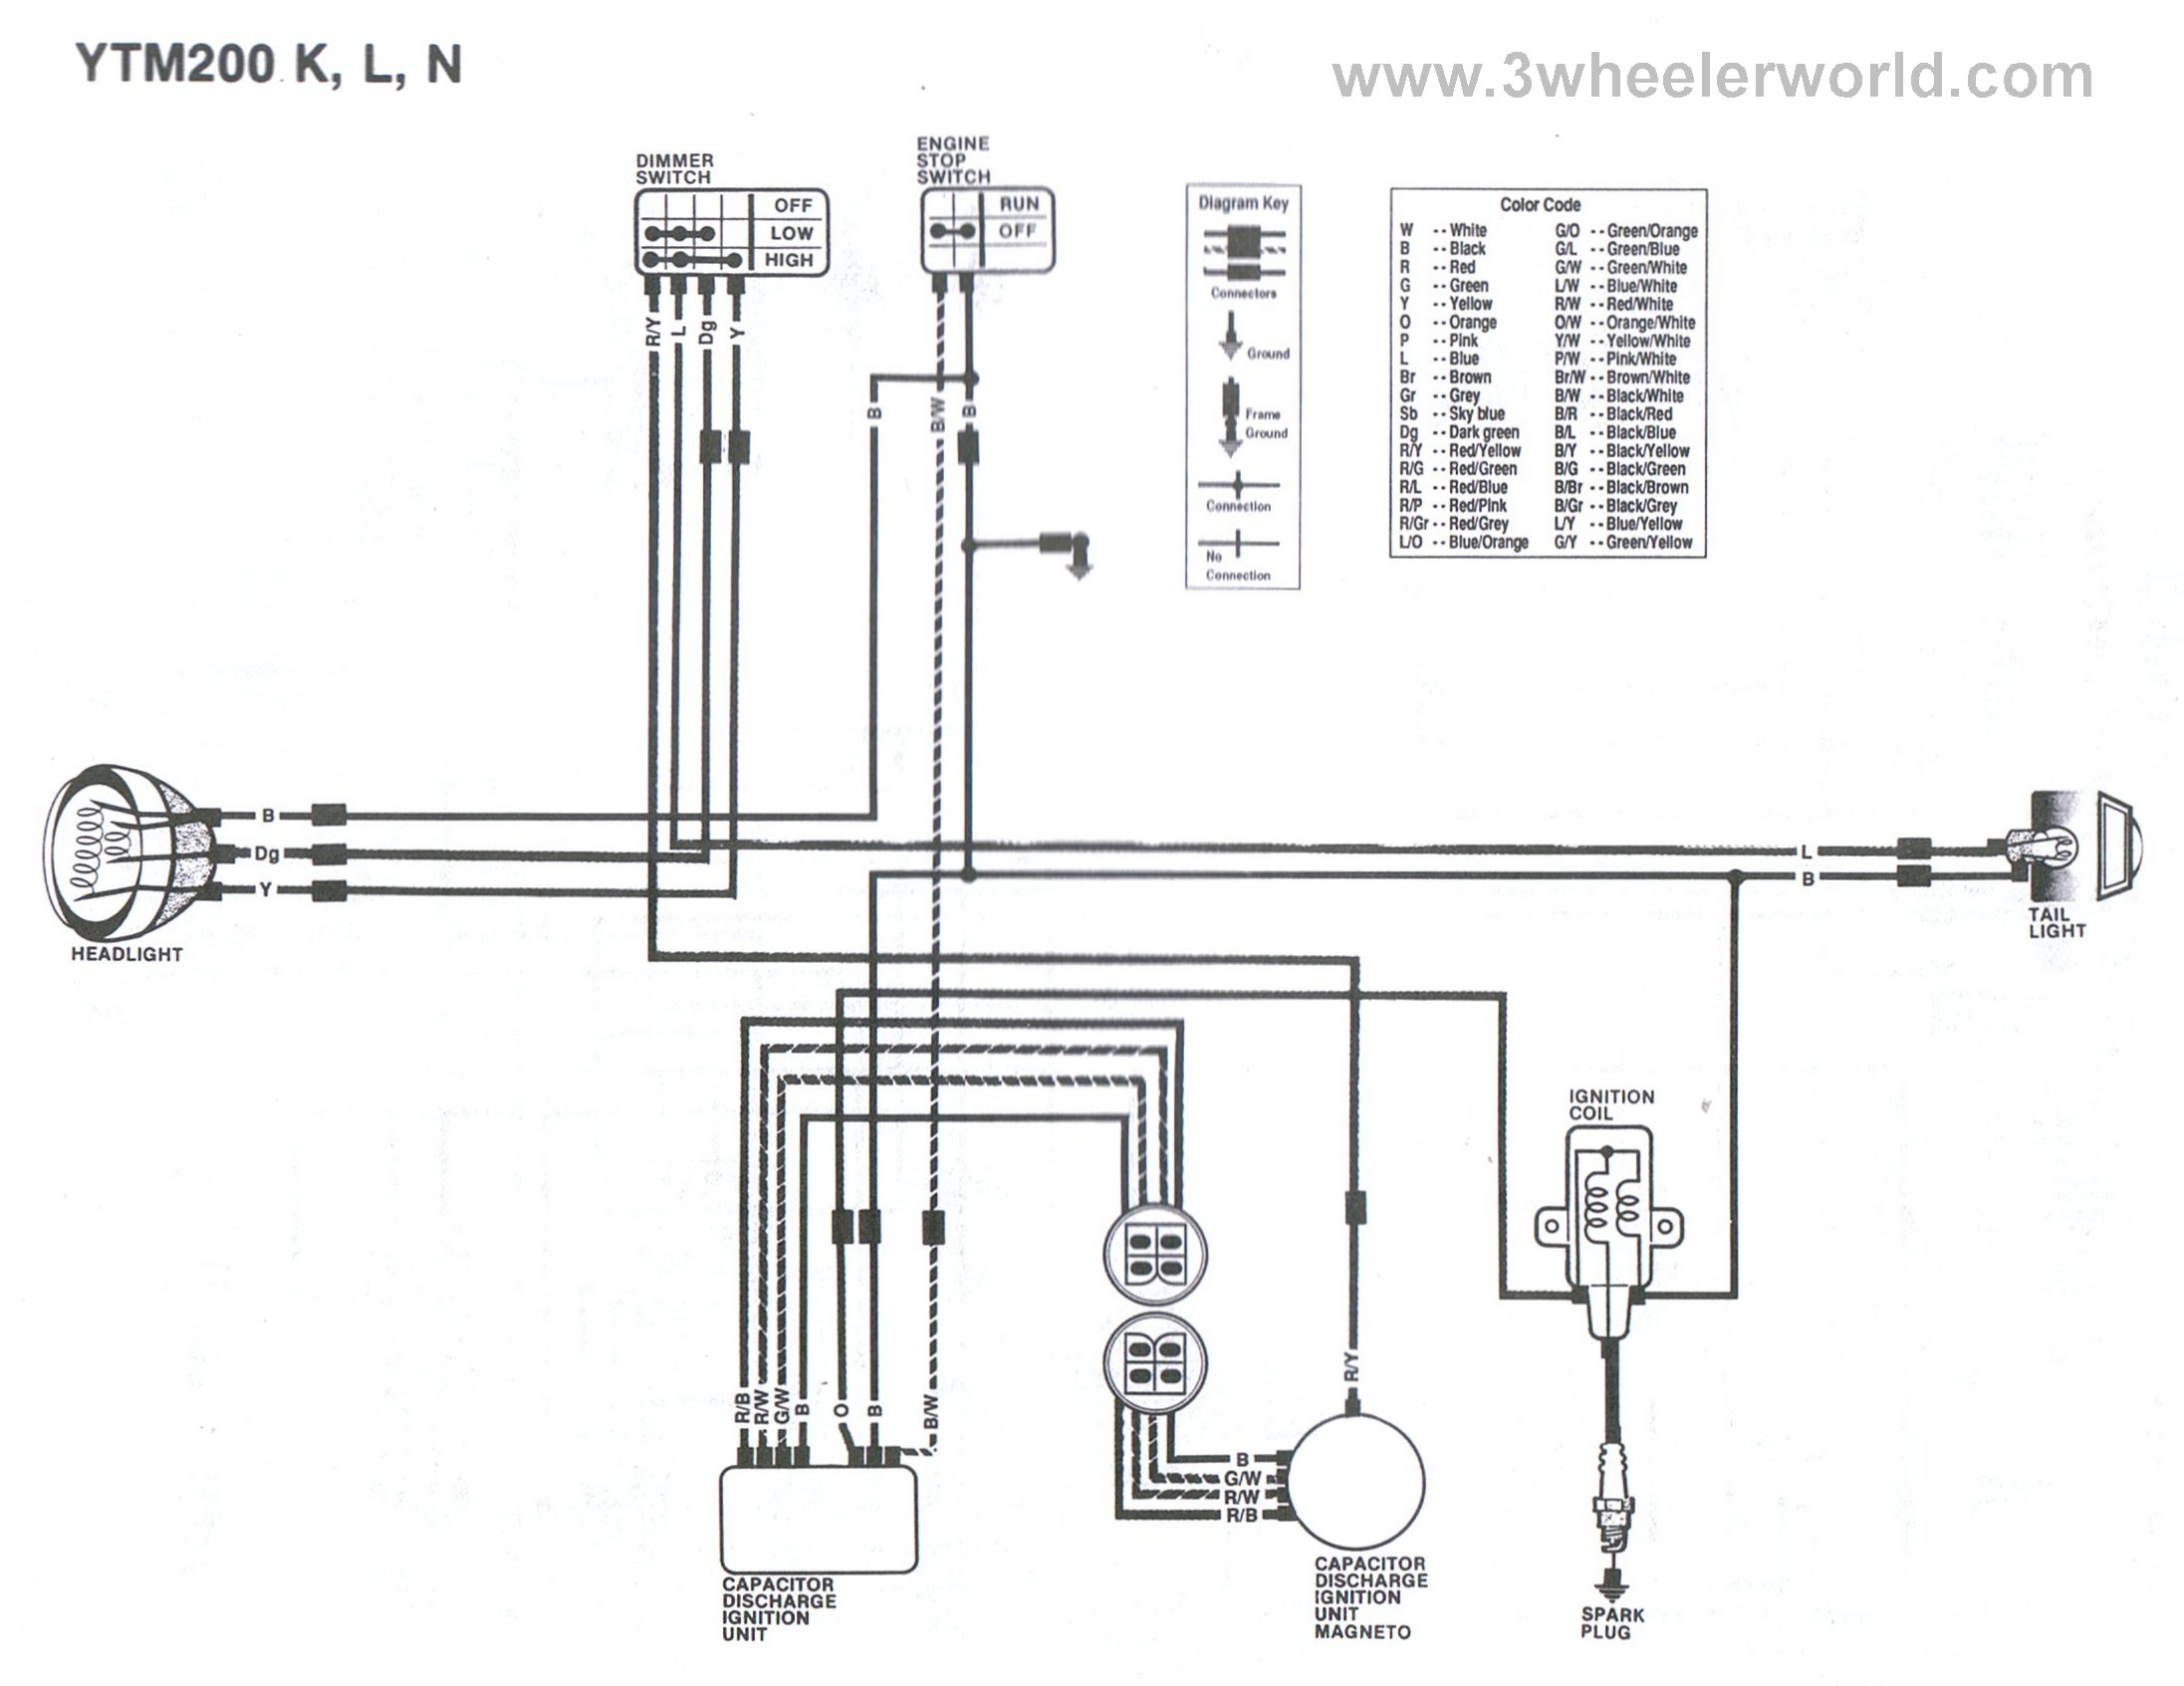 YTM200KLN 3 wheeler world tech help yamaha wiring diagrams suzuki dr200 wiring diagram at n-0.co